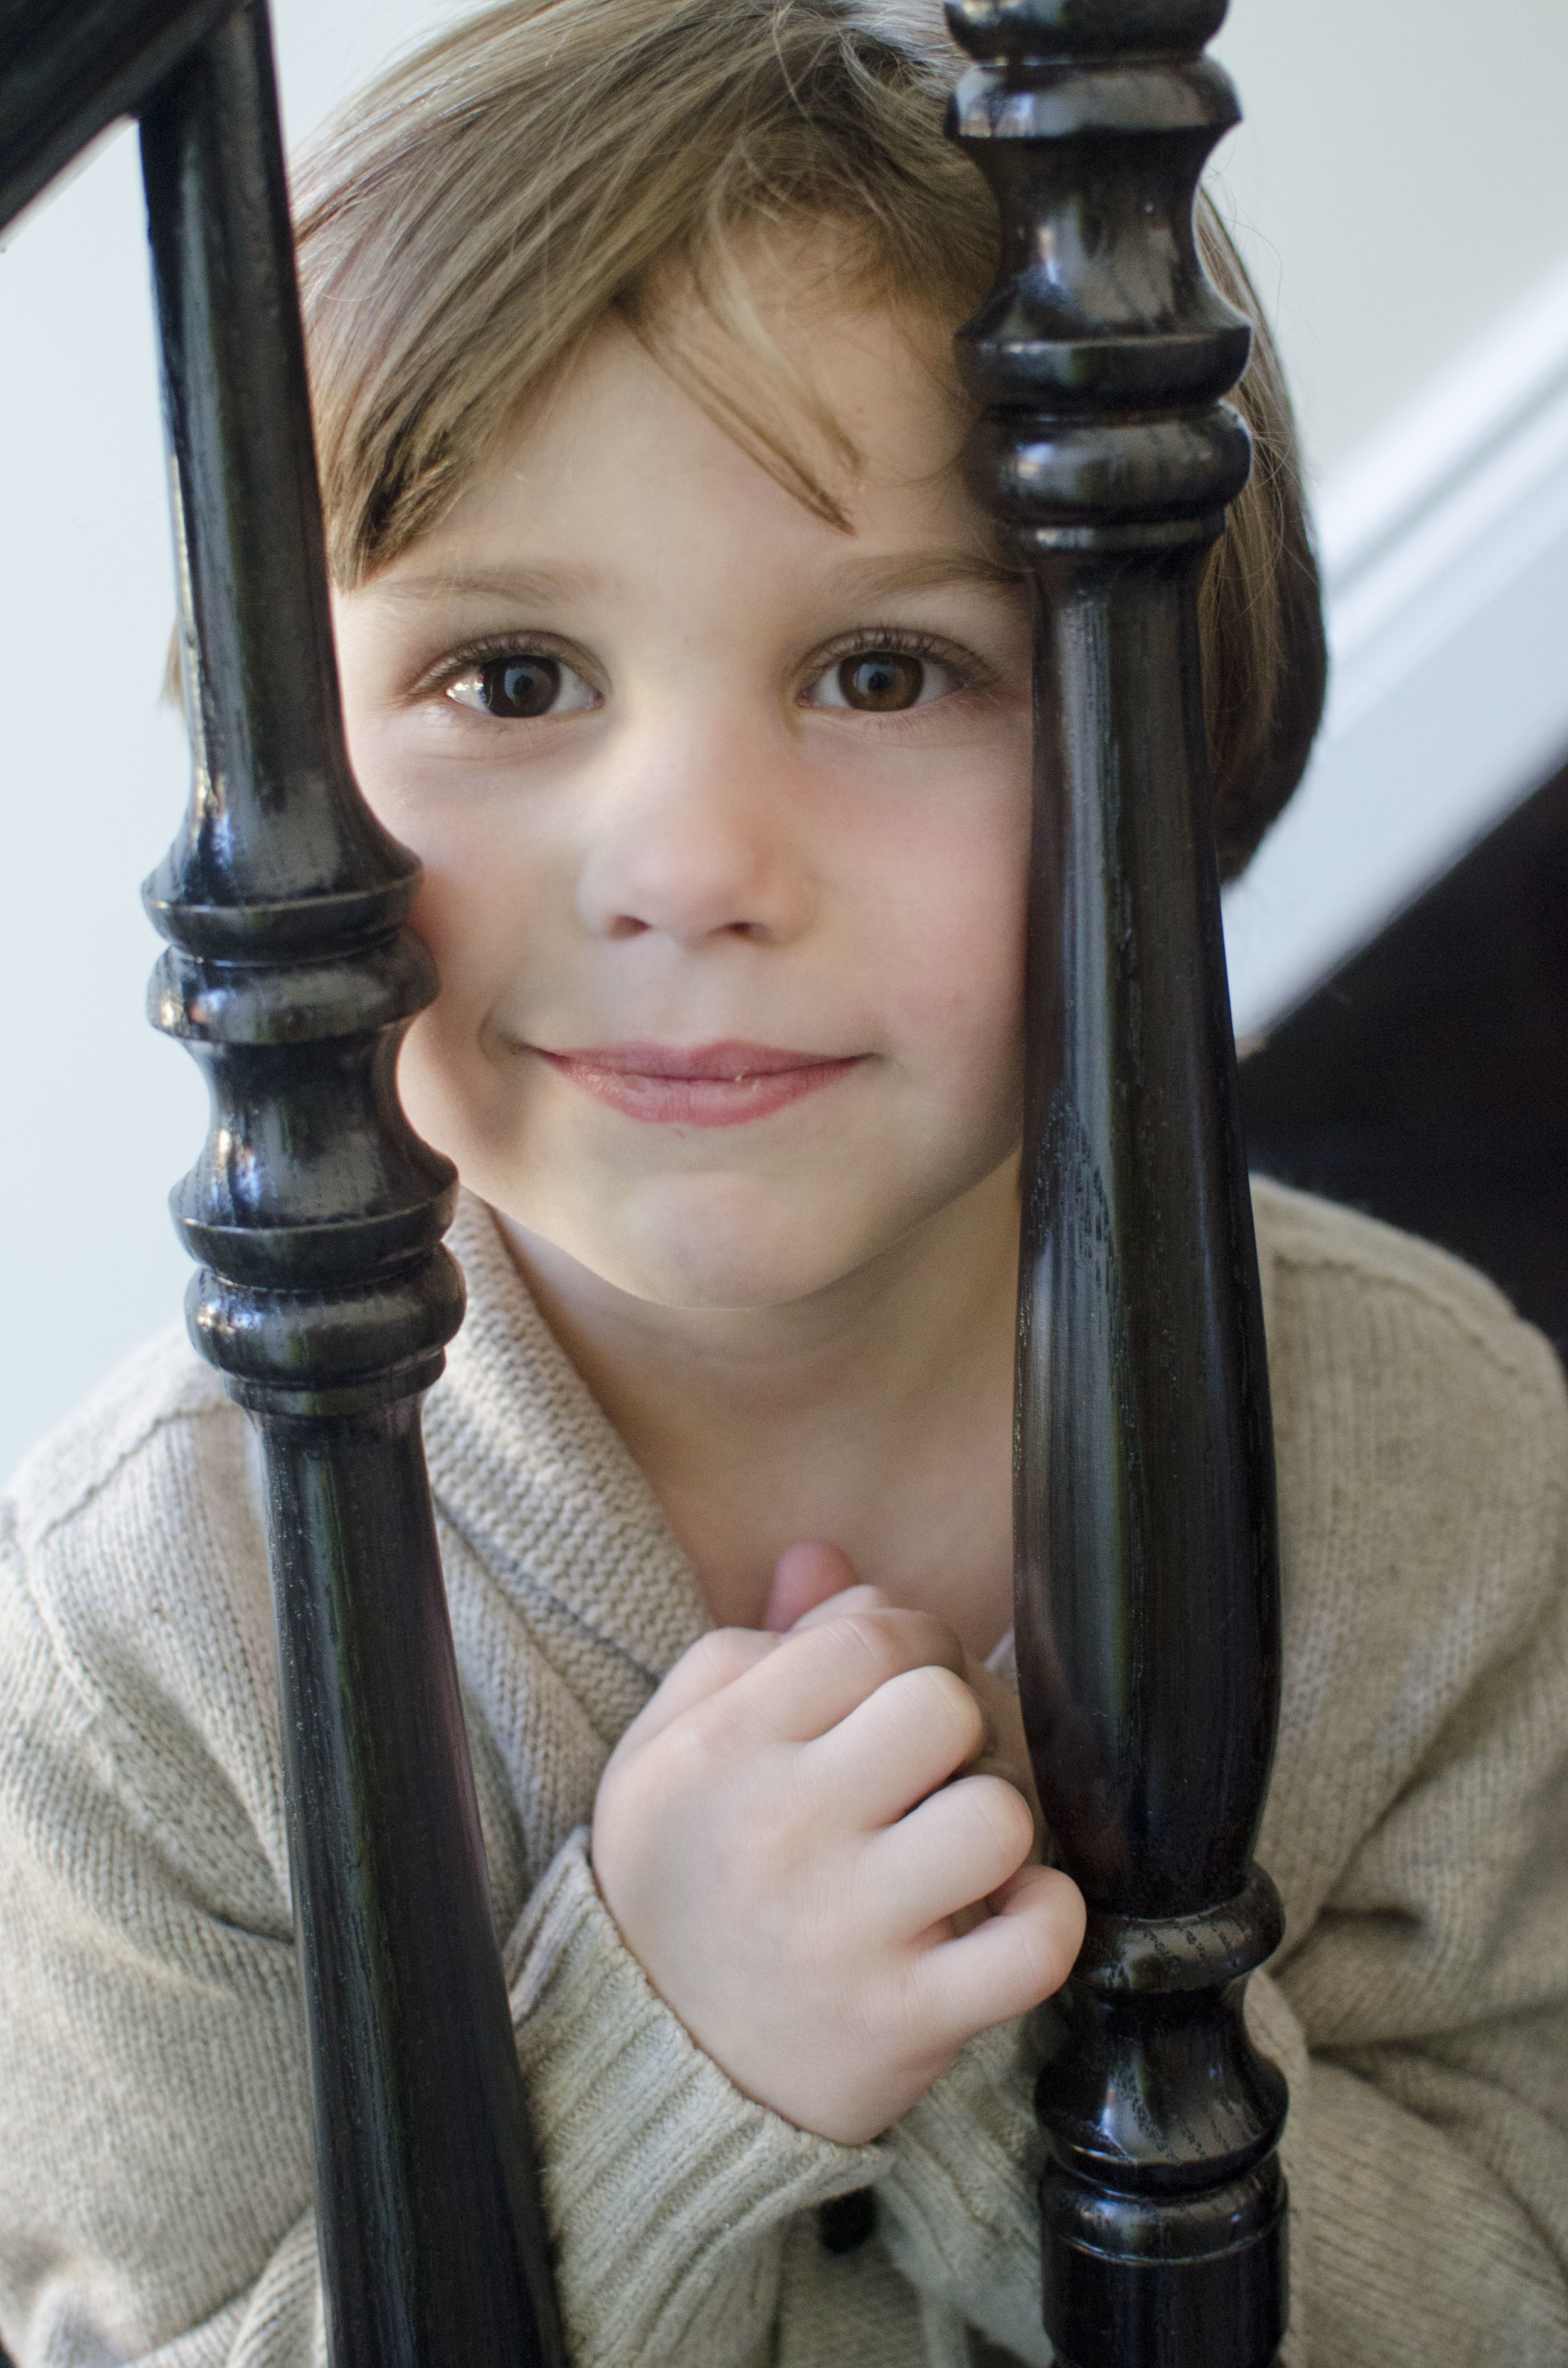 Victor Pahuskin, age 4, smiles, but only because his Mommy asked him to.